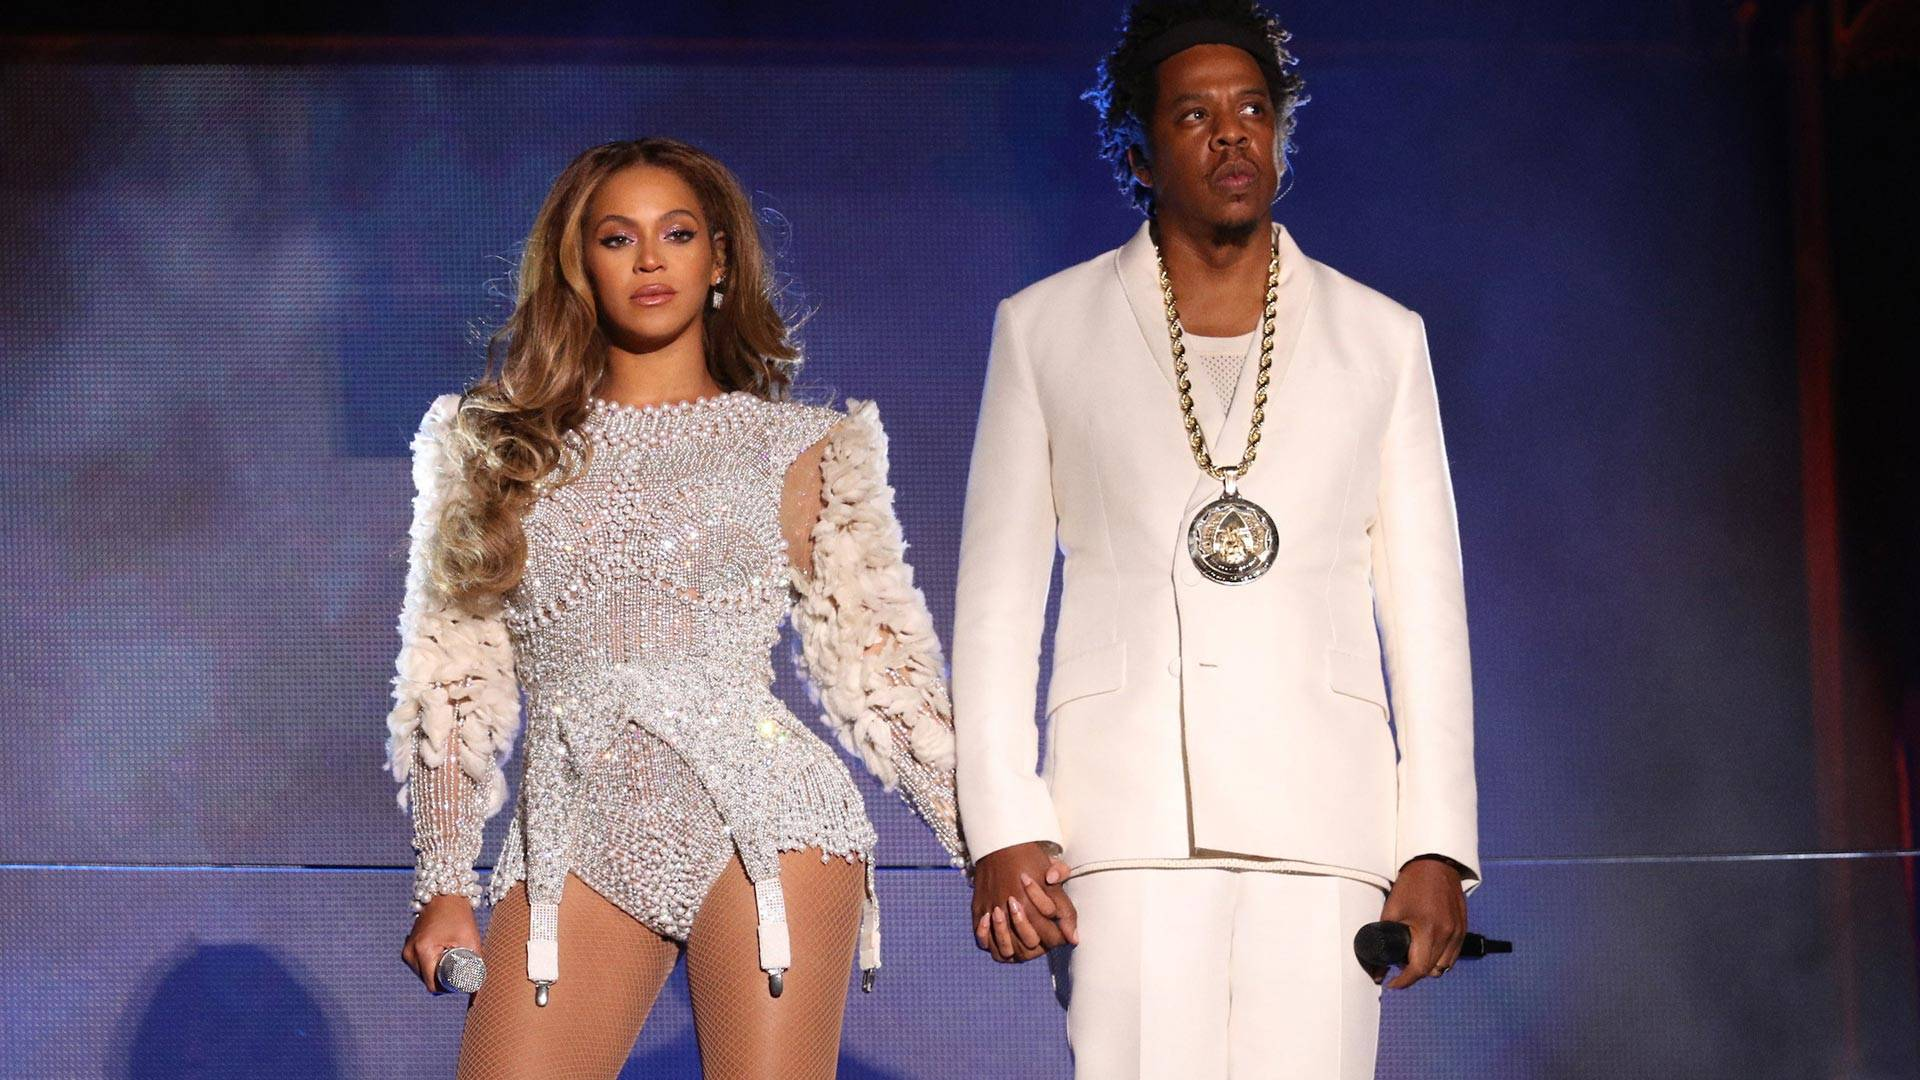 Live Review: Beyoncé and Jay-Z's 'On the Run II' Tour at ...